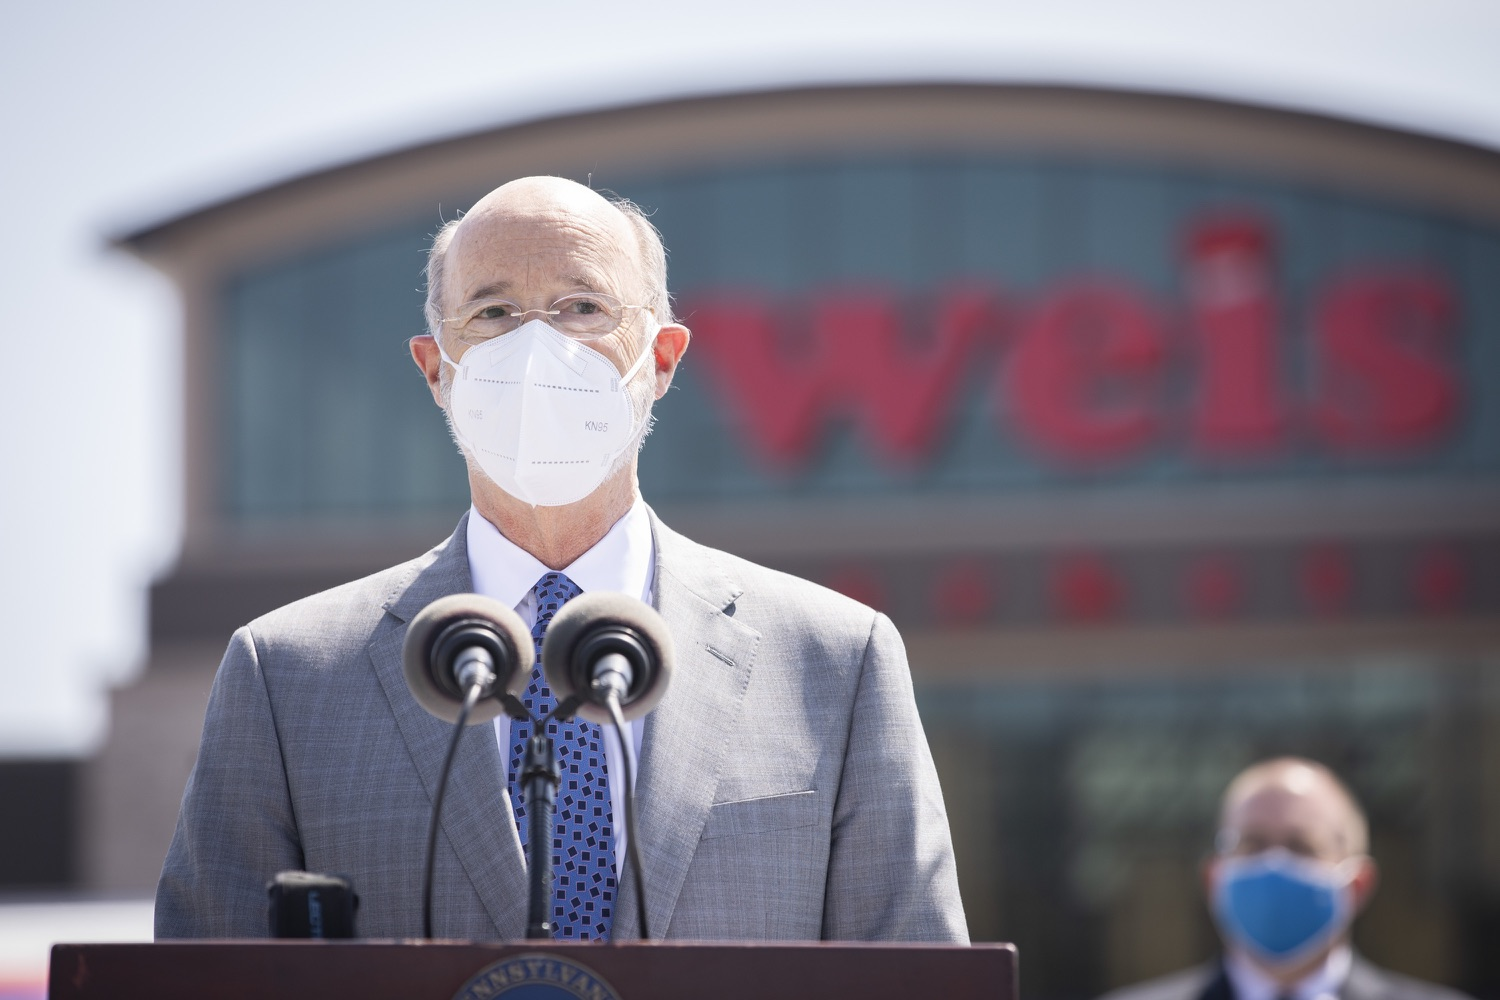 """<a href=""""https://filesource.wostreaming.net/commonwealthofpa/photo/18654_gov_vaccineeligibility_dz_016.jpg"""" target=""""_blank"""">⇣Download Photo<br></a>Pennsylvania Governor Tom Wolf speaking to the press.  Gov. Tom Wolf visited Weis Markets in Enola, Cumberland County, to recognize the heroic efforts of Pennsylvania's grocery store workers, who are now eligible for the COVID-19 vaccine.  The governor expressed his gratitude to Pennsylvania's 180,000 grocery store workers, who suddenly became frontline workers as the state took critical steps to mitigate the spread of COVID-19. Grocery stores were deemed life-sustaining businesses, and these employees put their lives at risk to ensure their stores remained open to the public. APRIL 06, 2021 - ENOLA, PA.."""